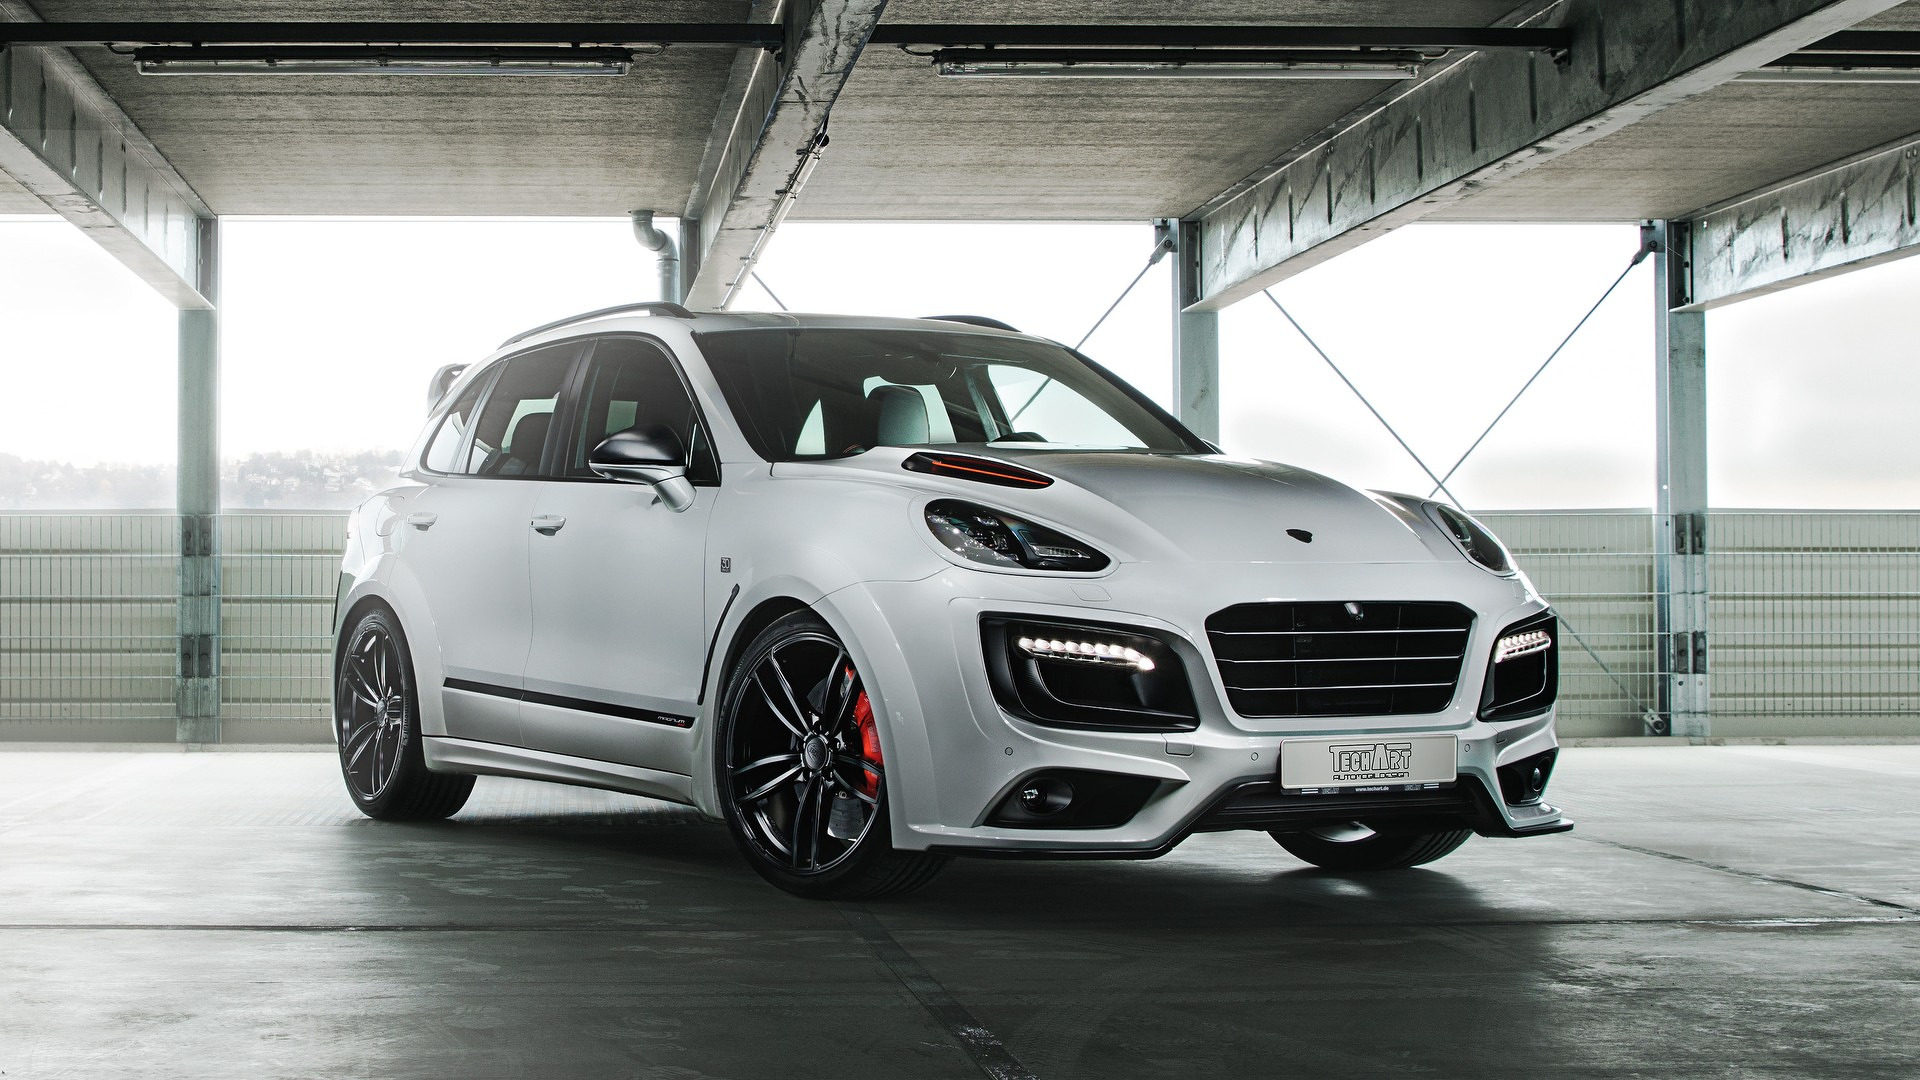 720 Hp Porsche Cayenne Turbo S Marks Techart S 30th Anniversary